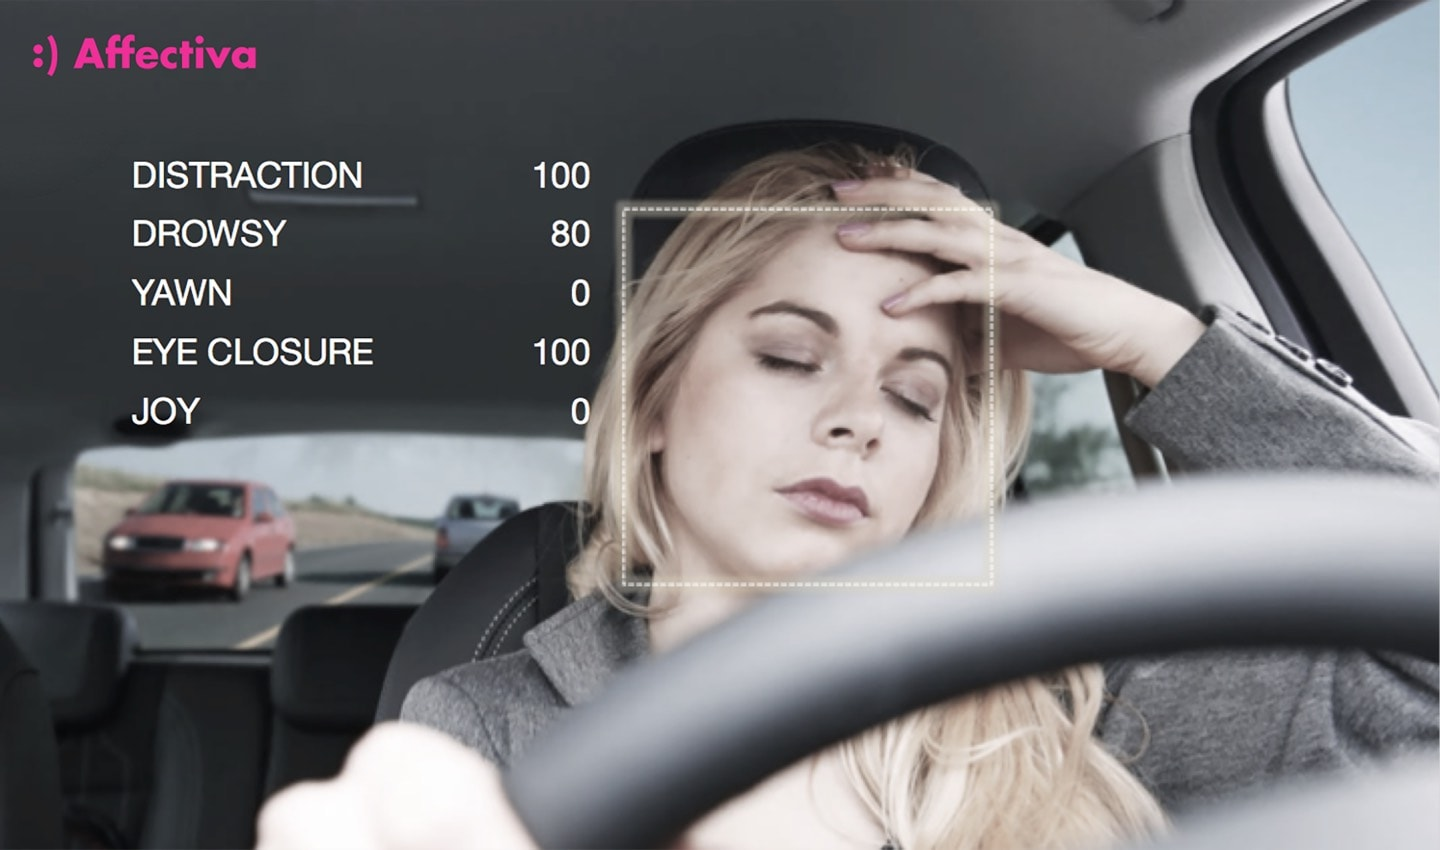 Affectiva detecting driver drowsiness